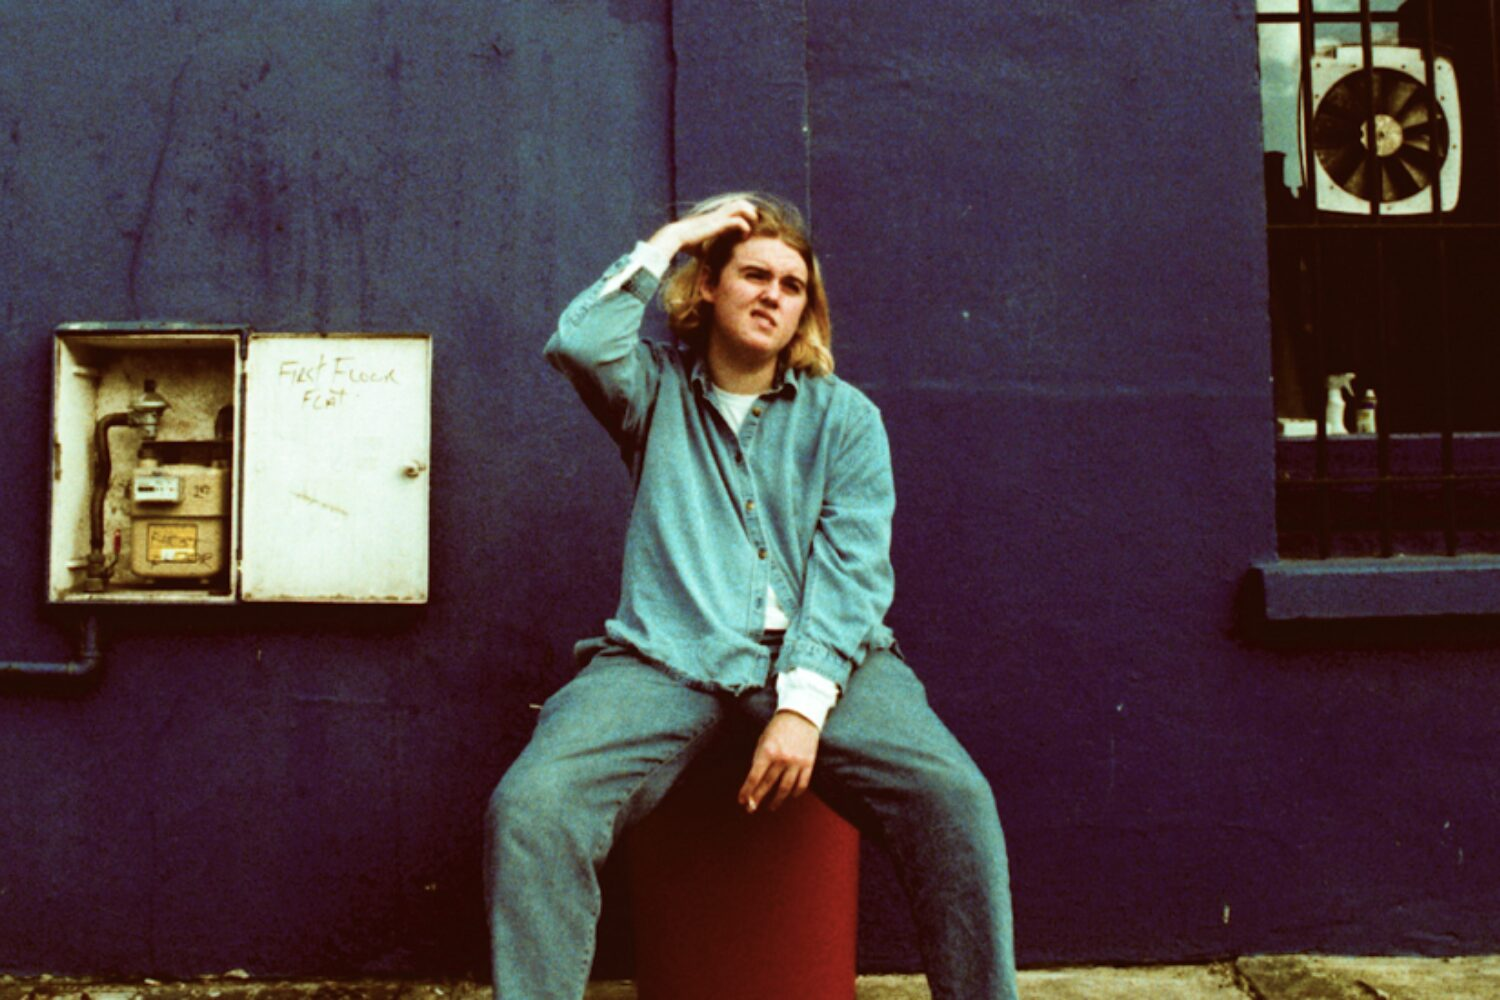 Oscar Lang offers up new track 'Get Out'